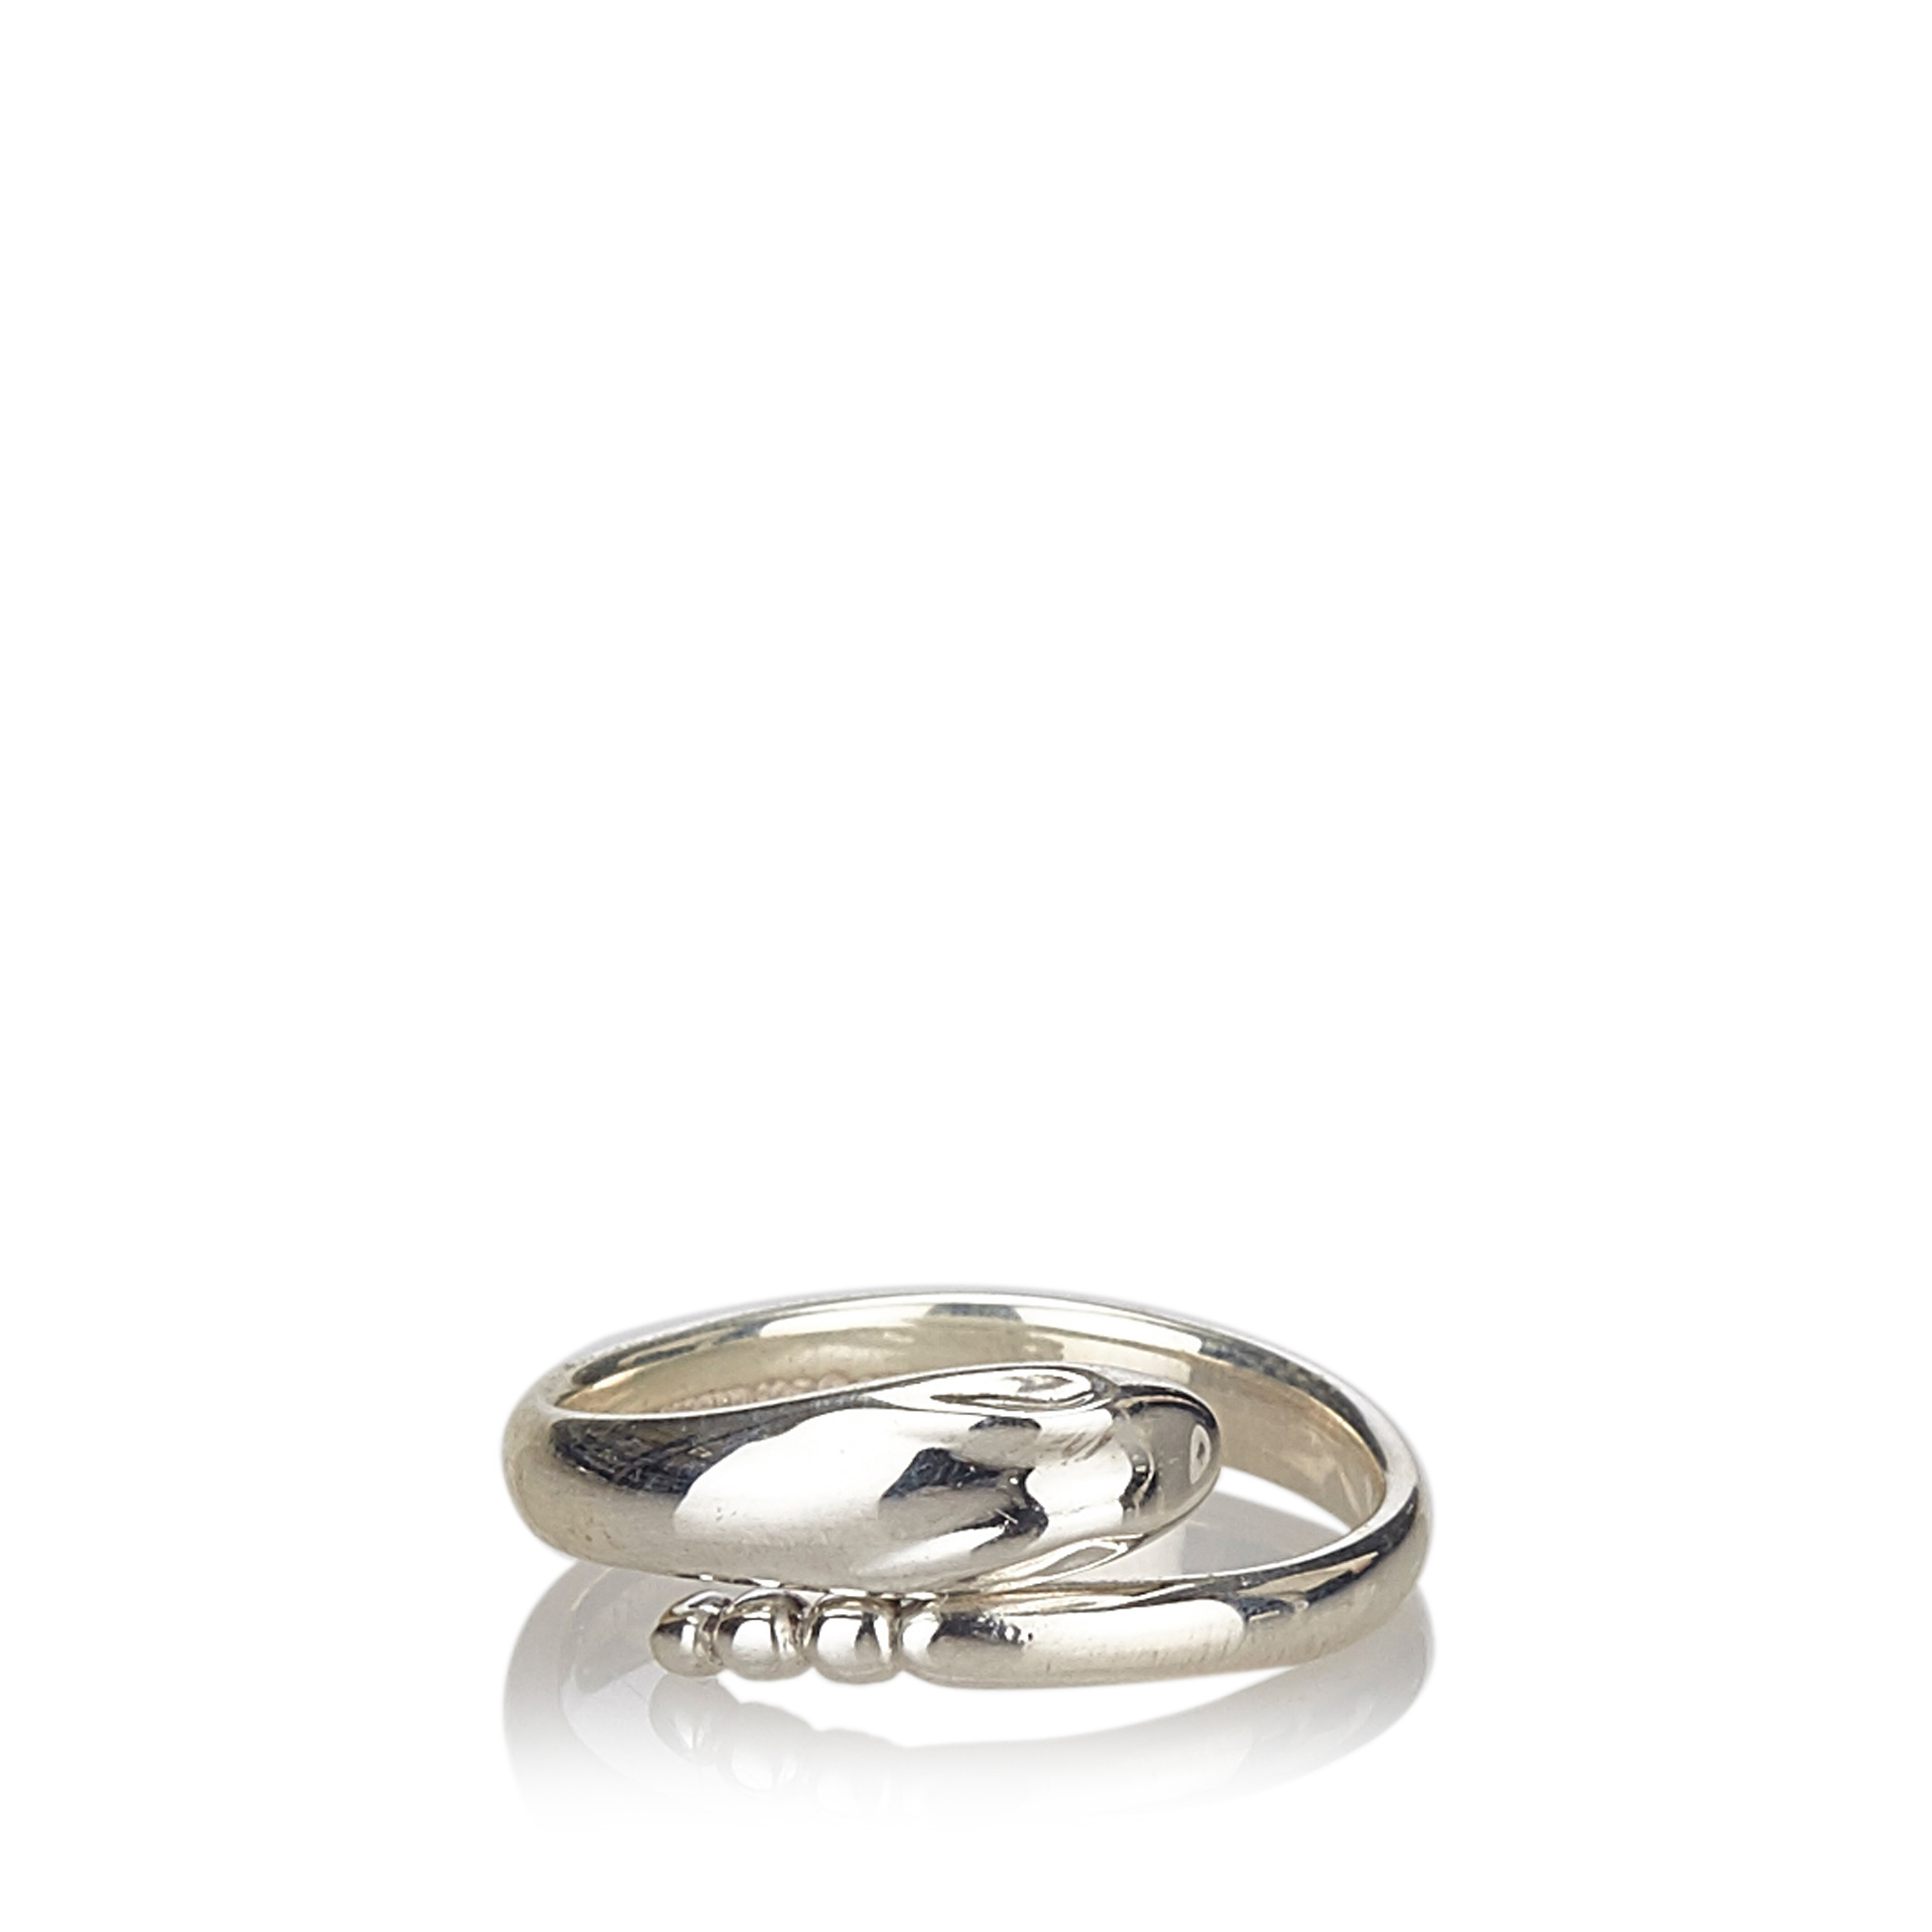 "Image of ""Tiffany & Co. Sterling Silver Snake Ring Size 4.5"""